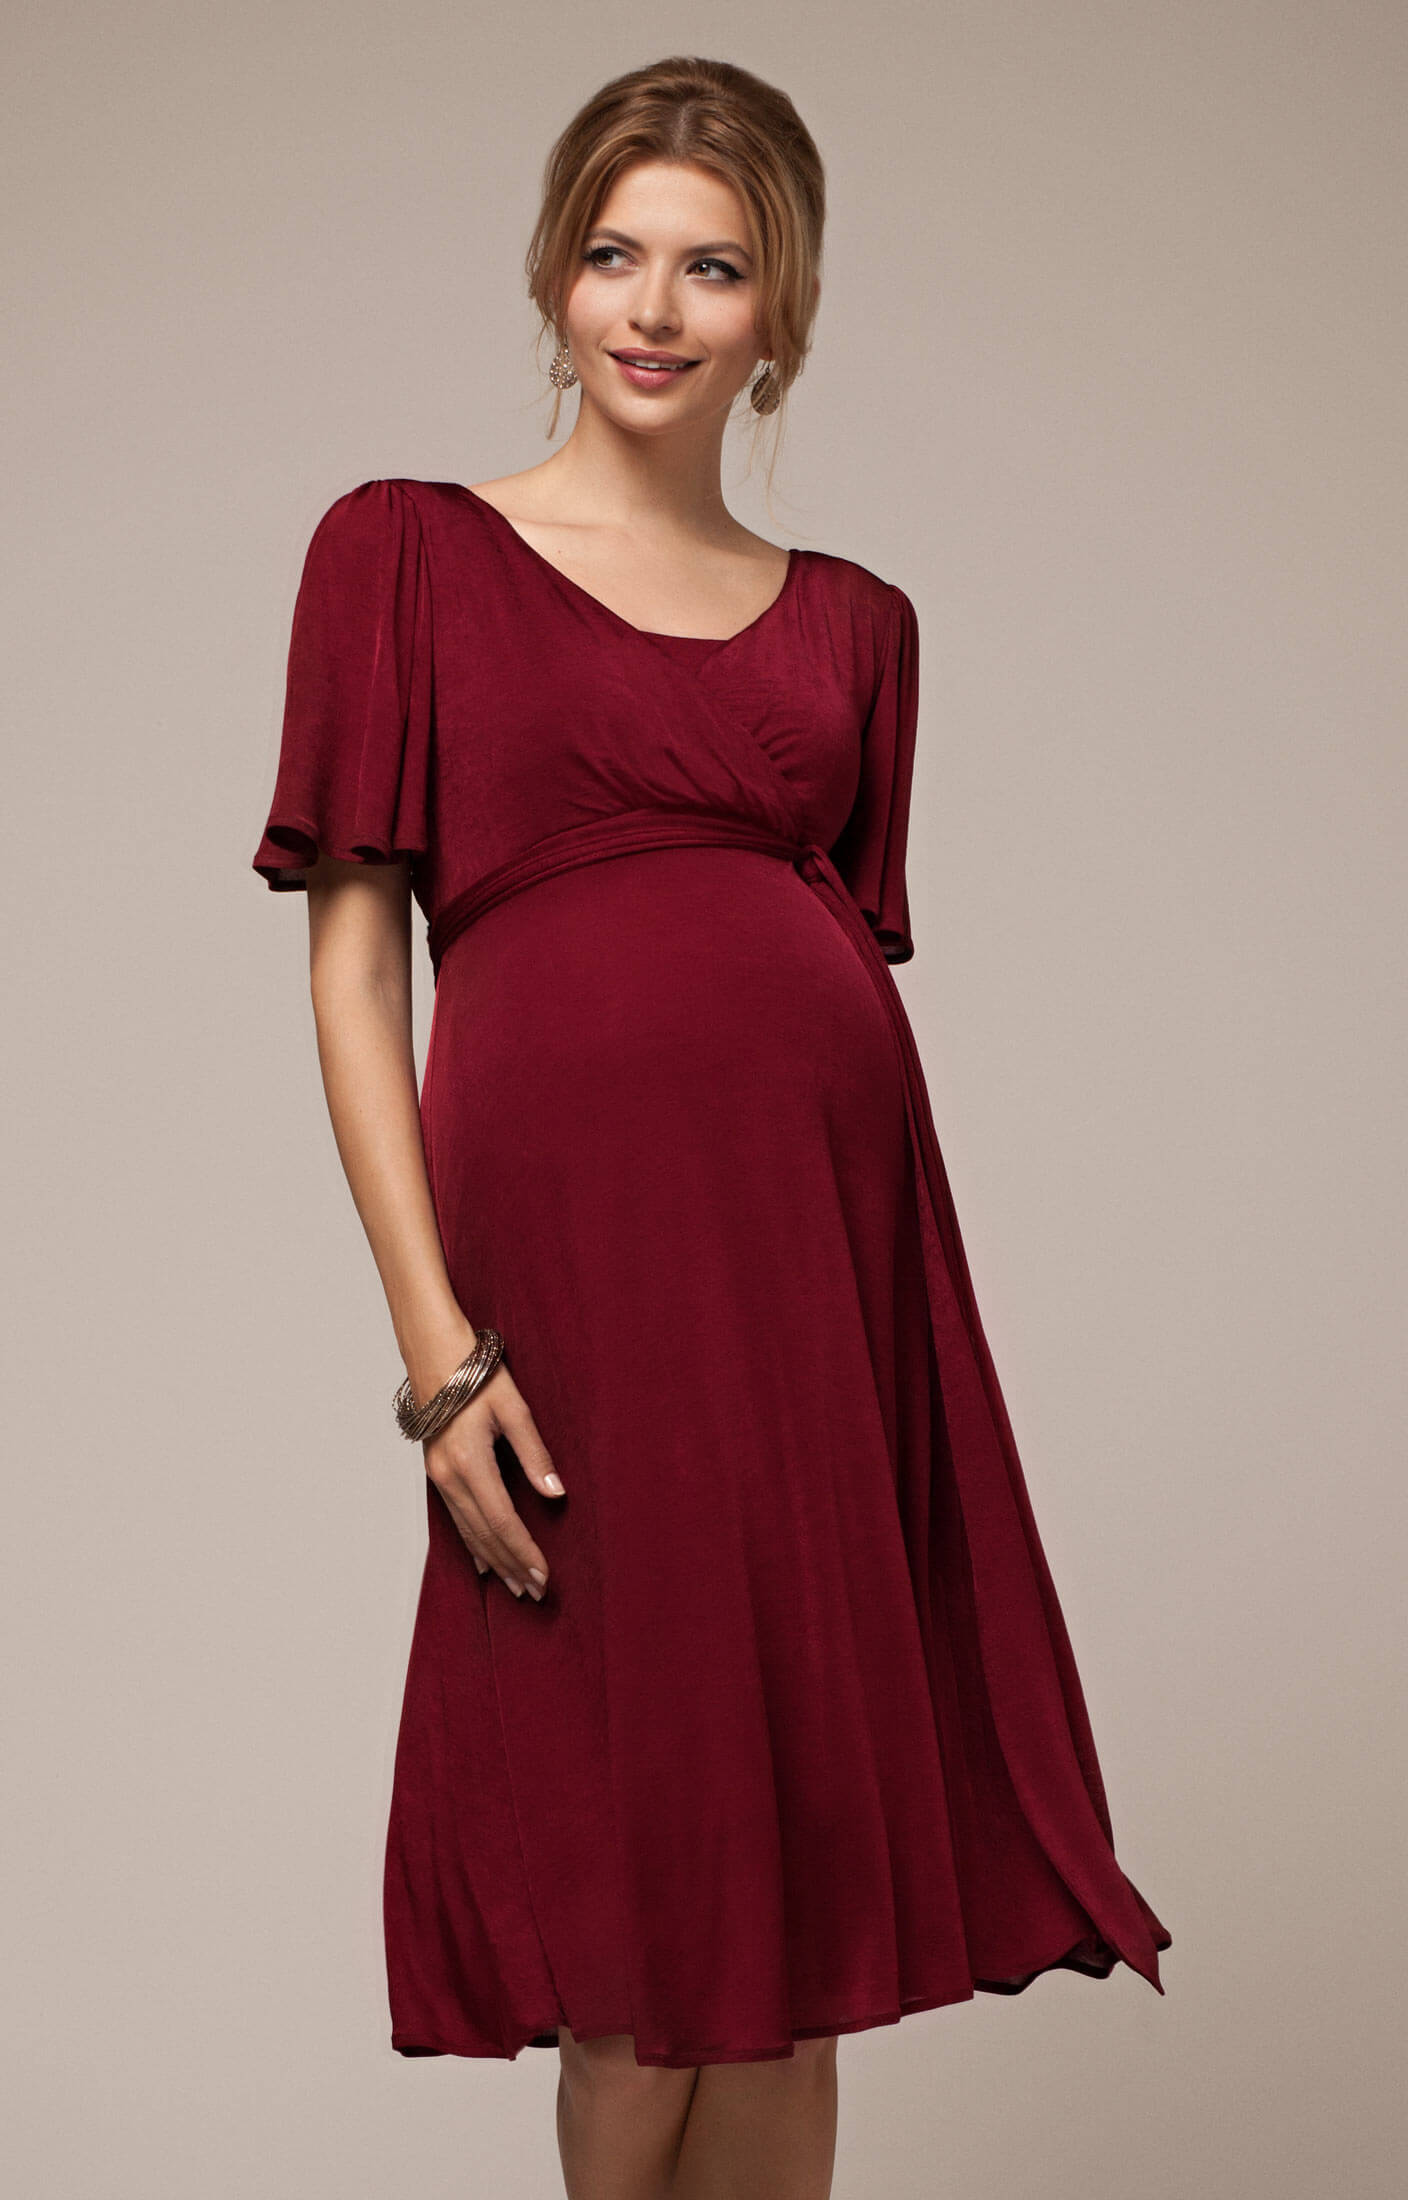 alicia nursing dress berry maternity wedding dresses evening wear and party clothes by. Black Bedroom Furniture Sets. Home Design Ideas